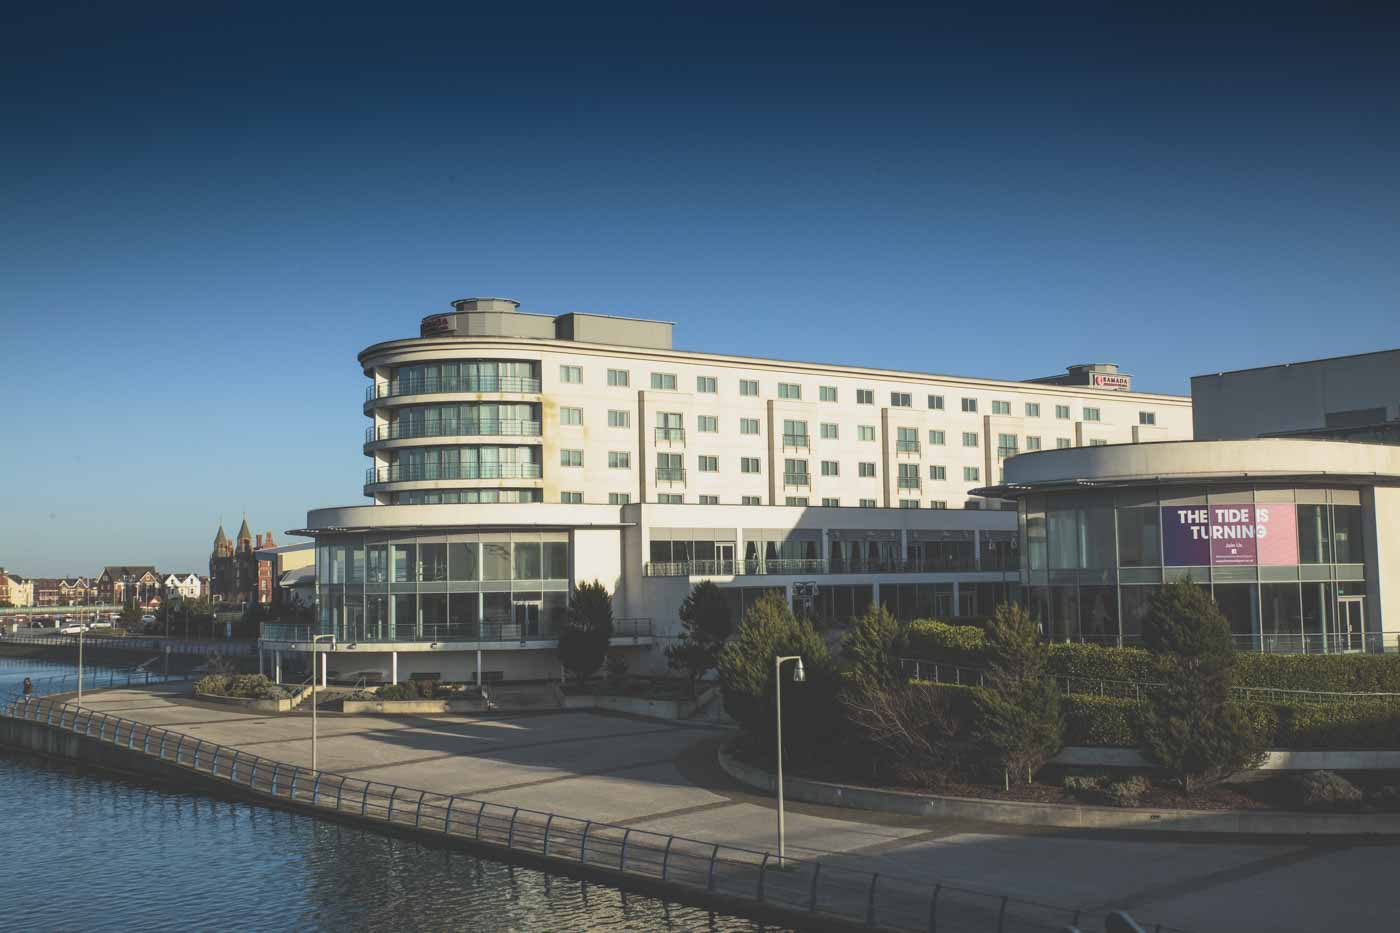 ramada hotel southport, lake